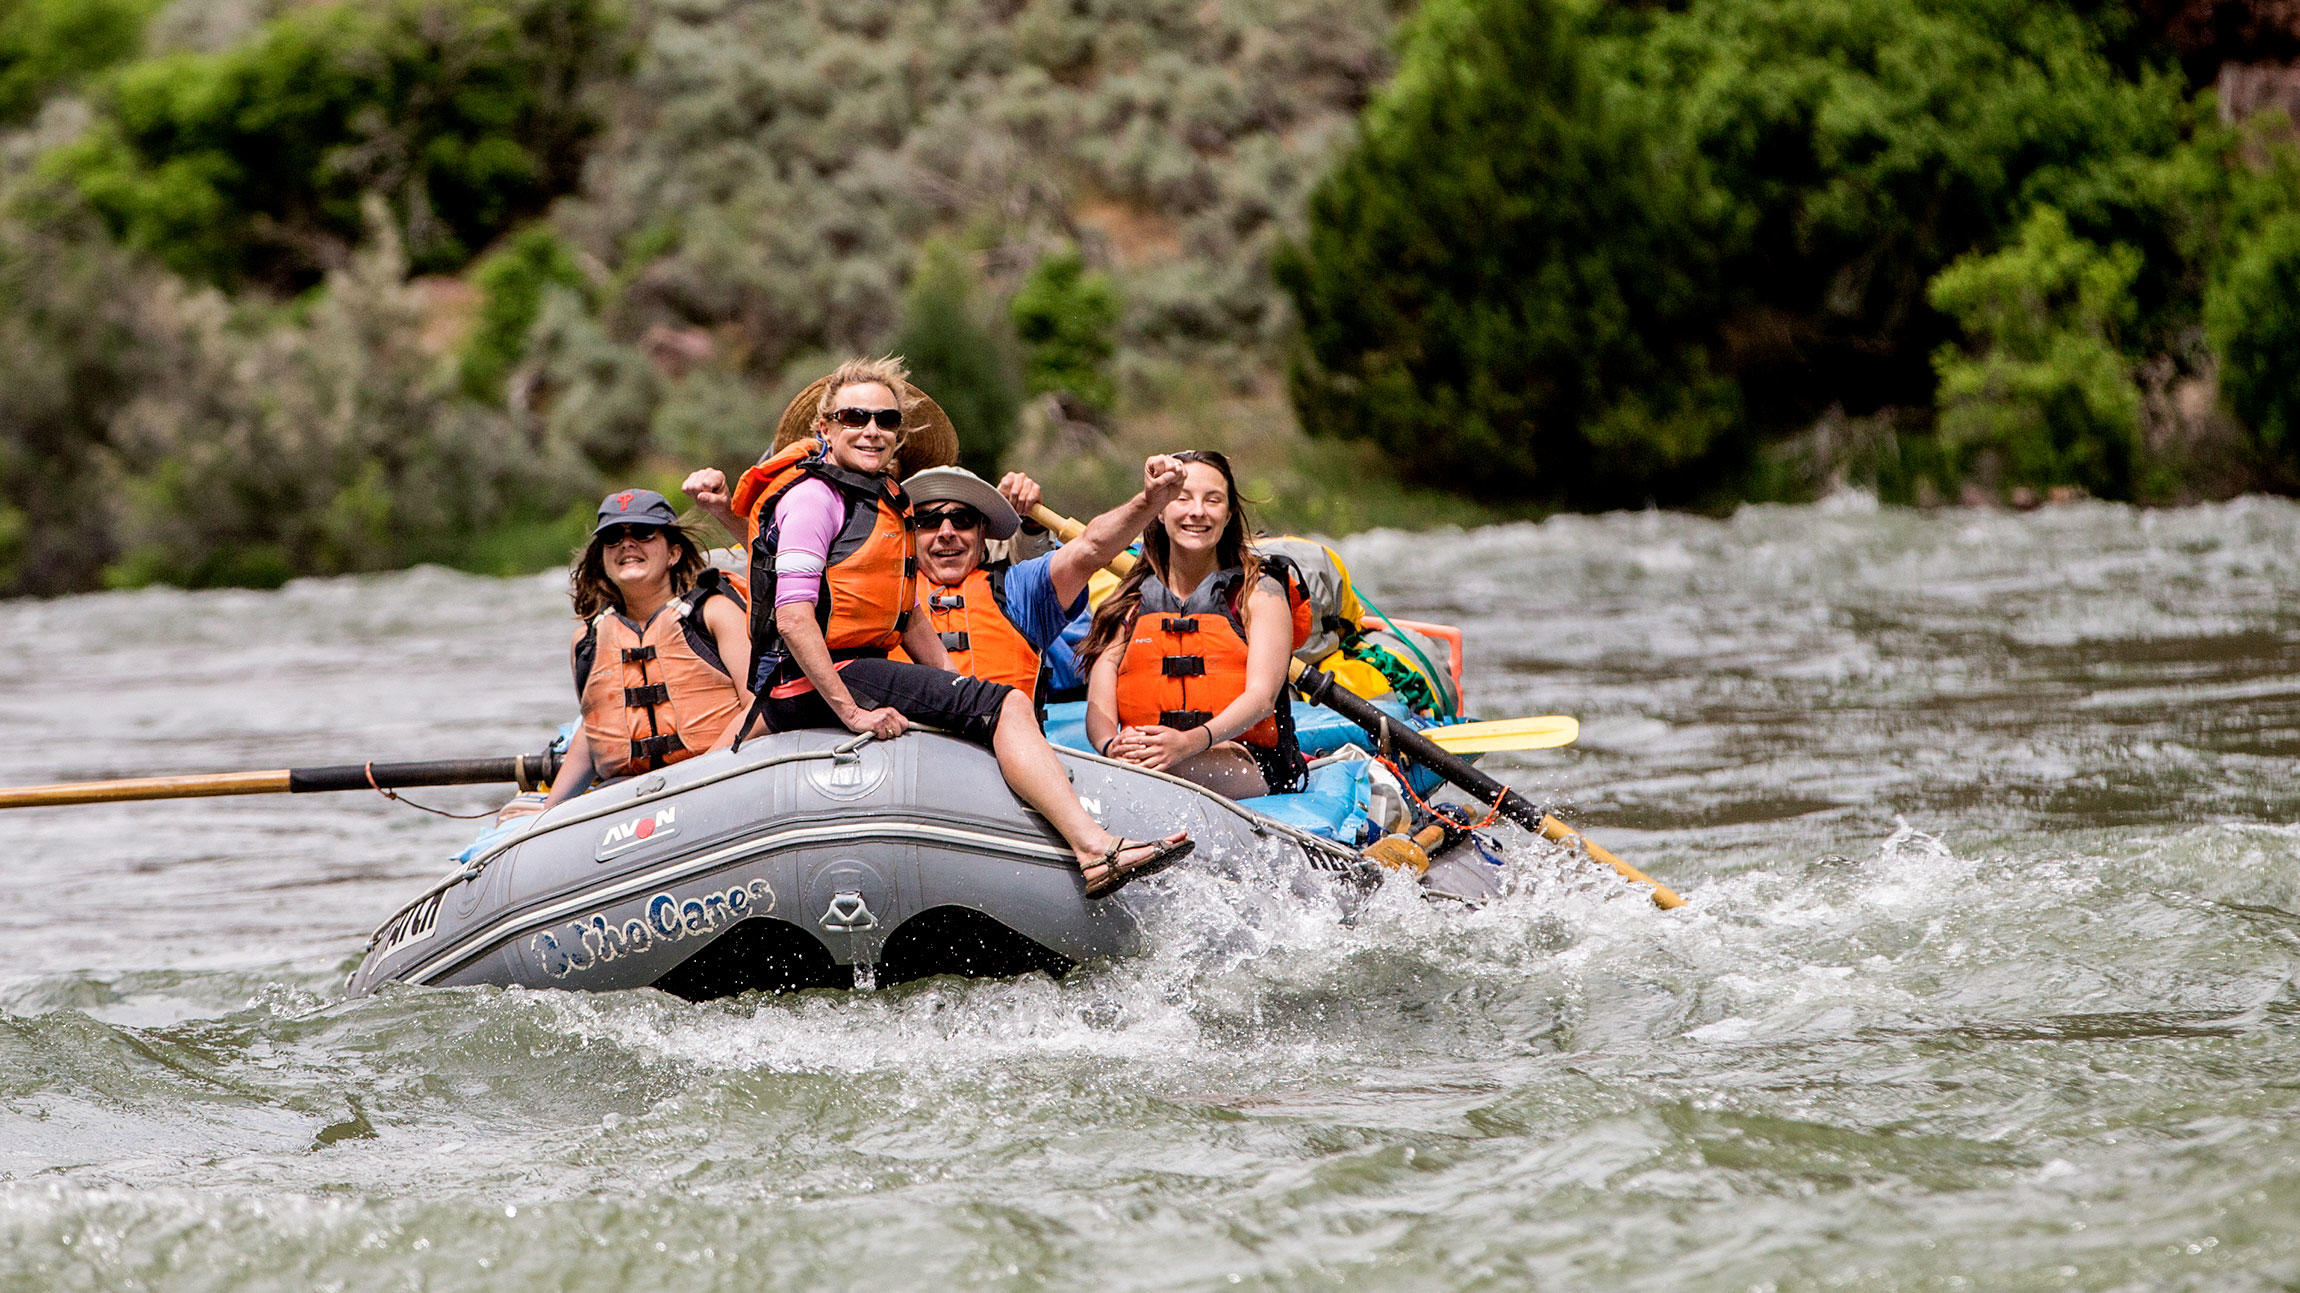 Bebo Andrews, Dennis Tharp, and their daughter, Nisty, on the Audubon Rockies Green River trip.